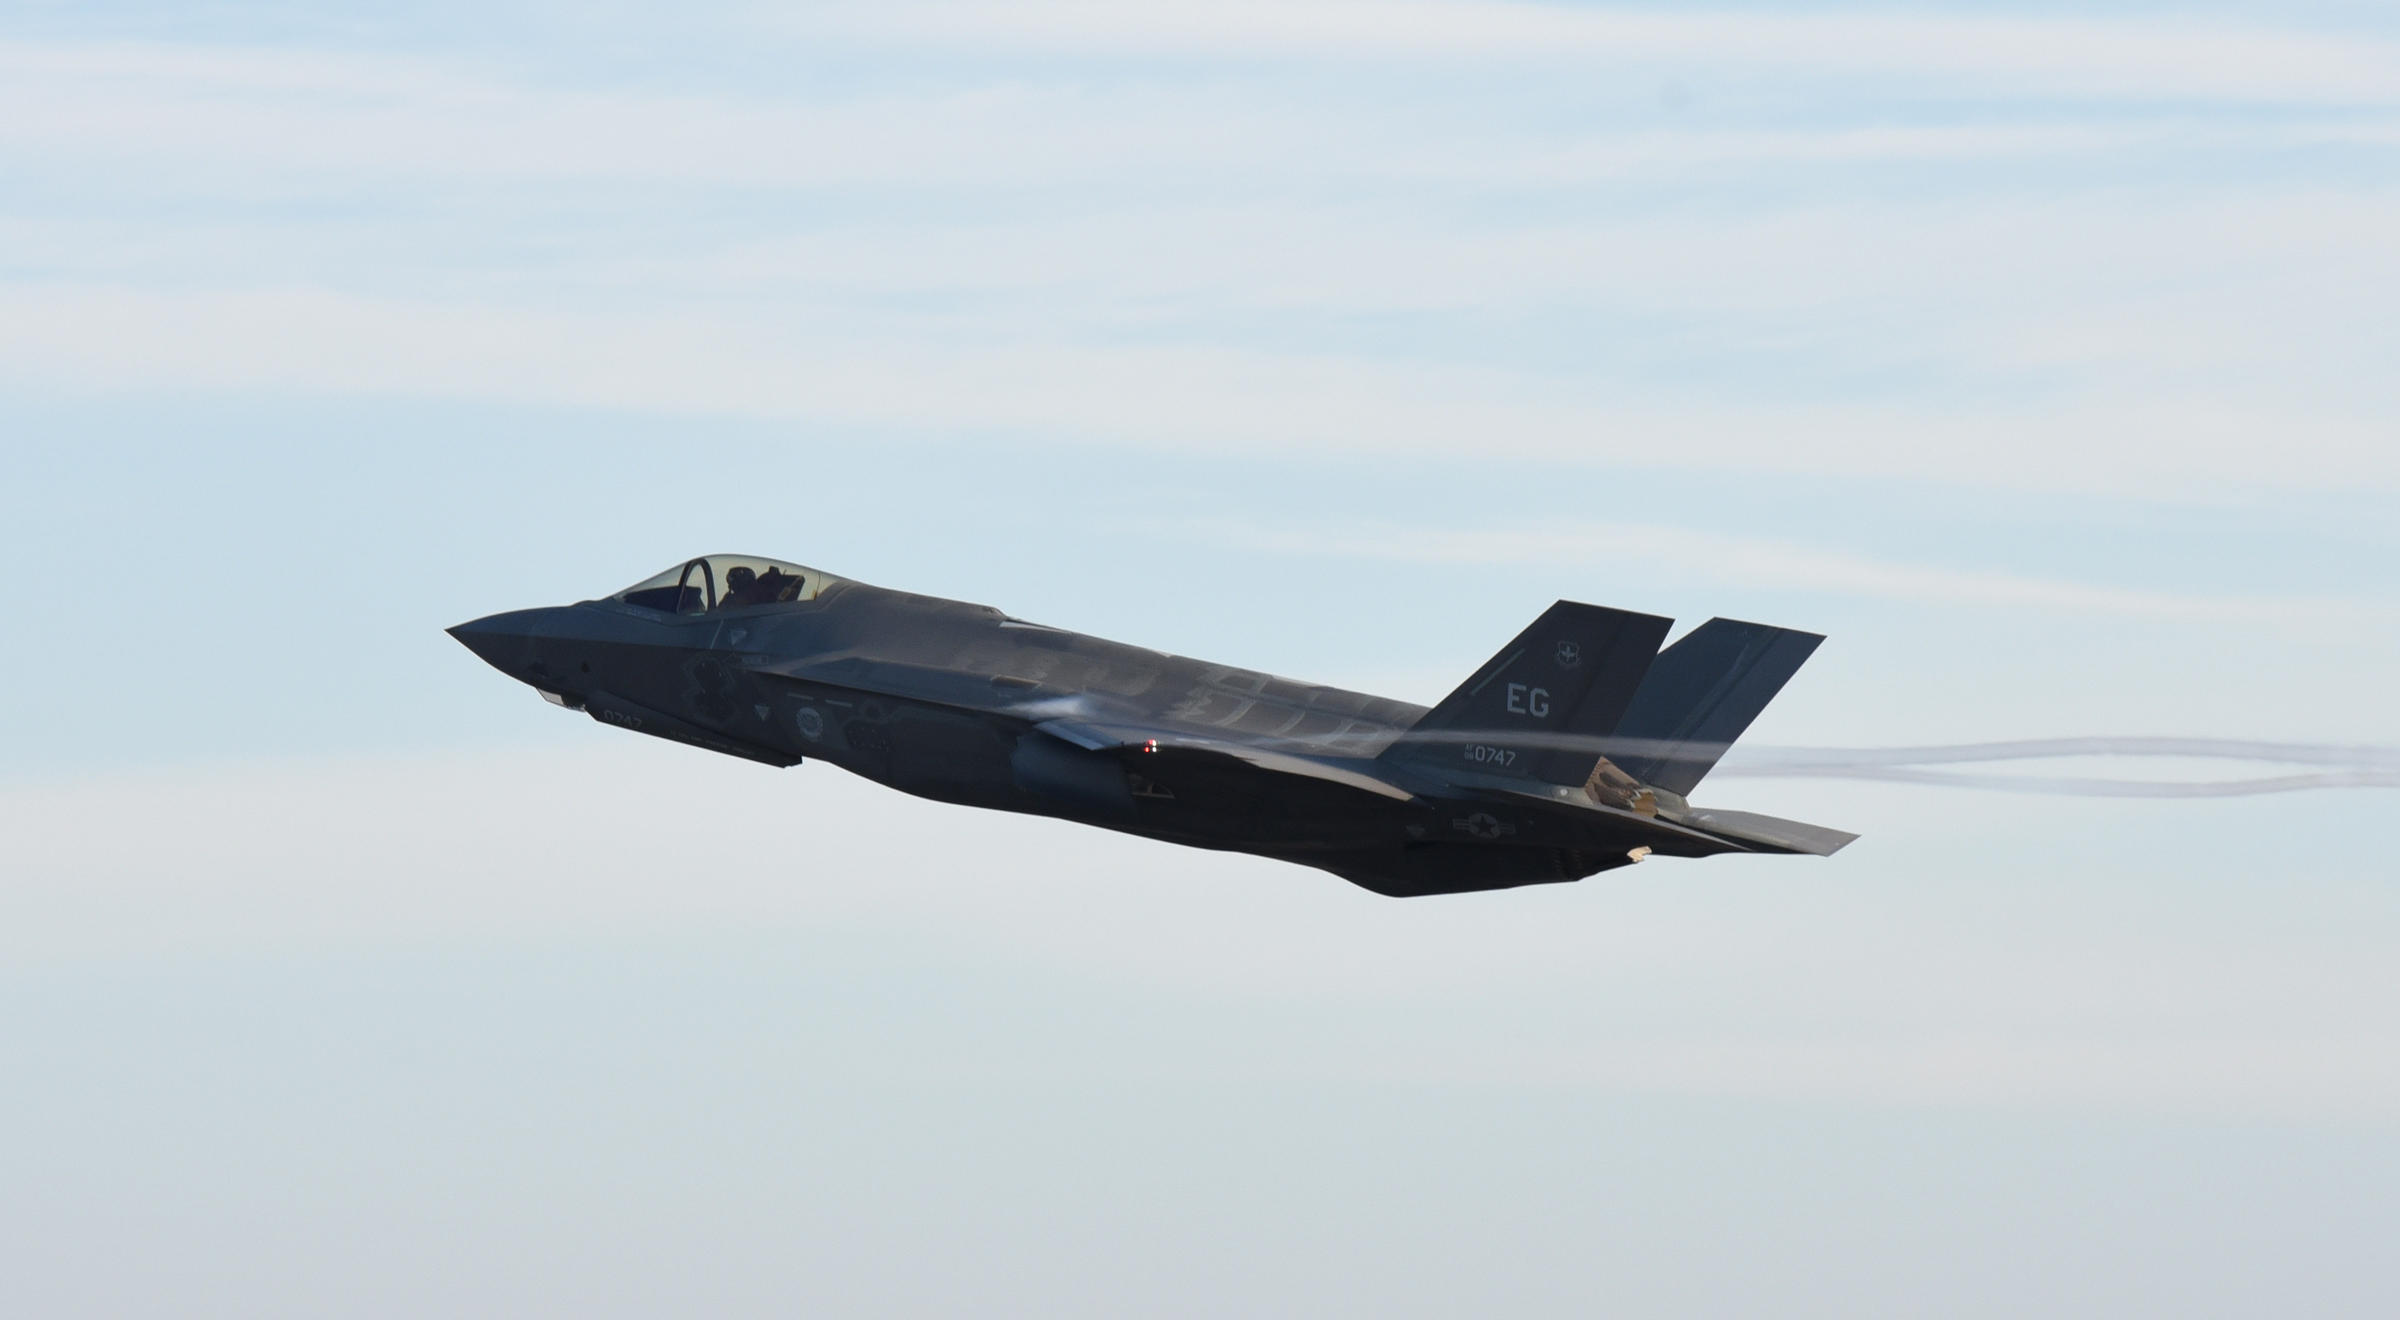 The economic benefits that will come with two squadrons of F-35s scheduled to be based at Eielson beginning in 2021 are now expected to draw more than 5,000 people to the area, a consultant said Monday. (U.S. Air Force photo by Staff Sgt. Alex Fox Echols III/Released)